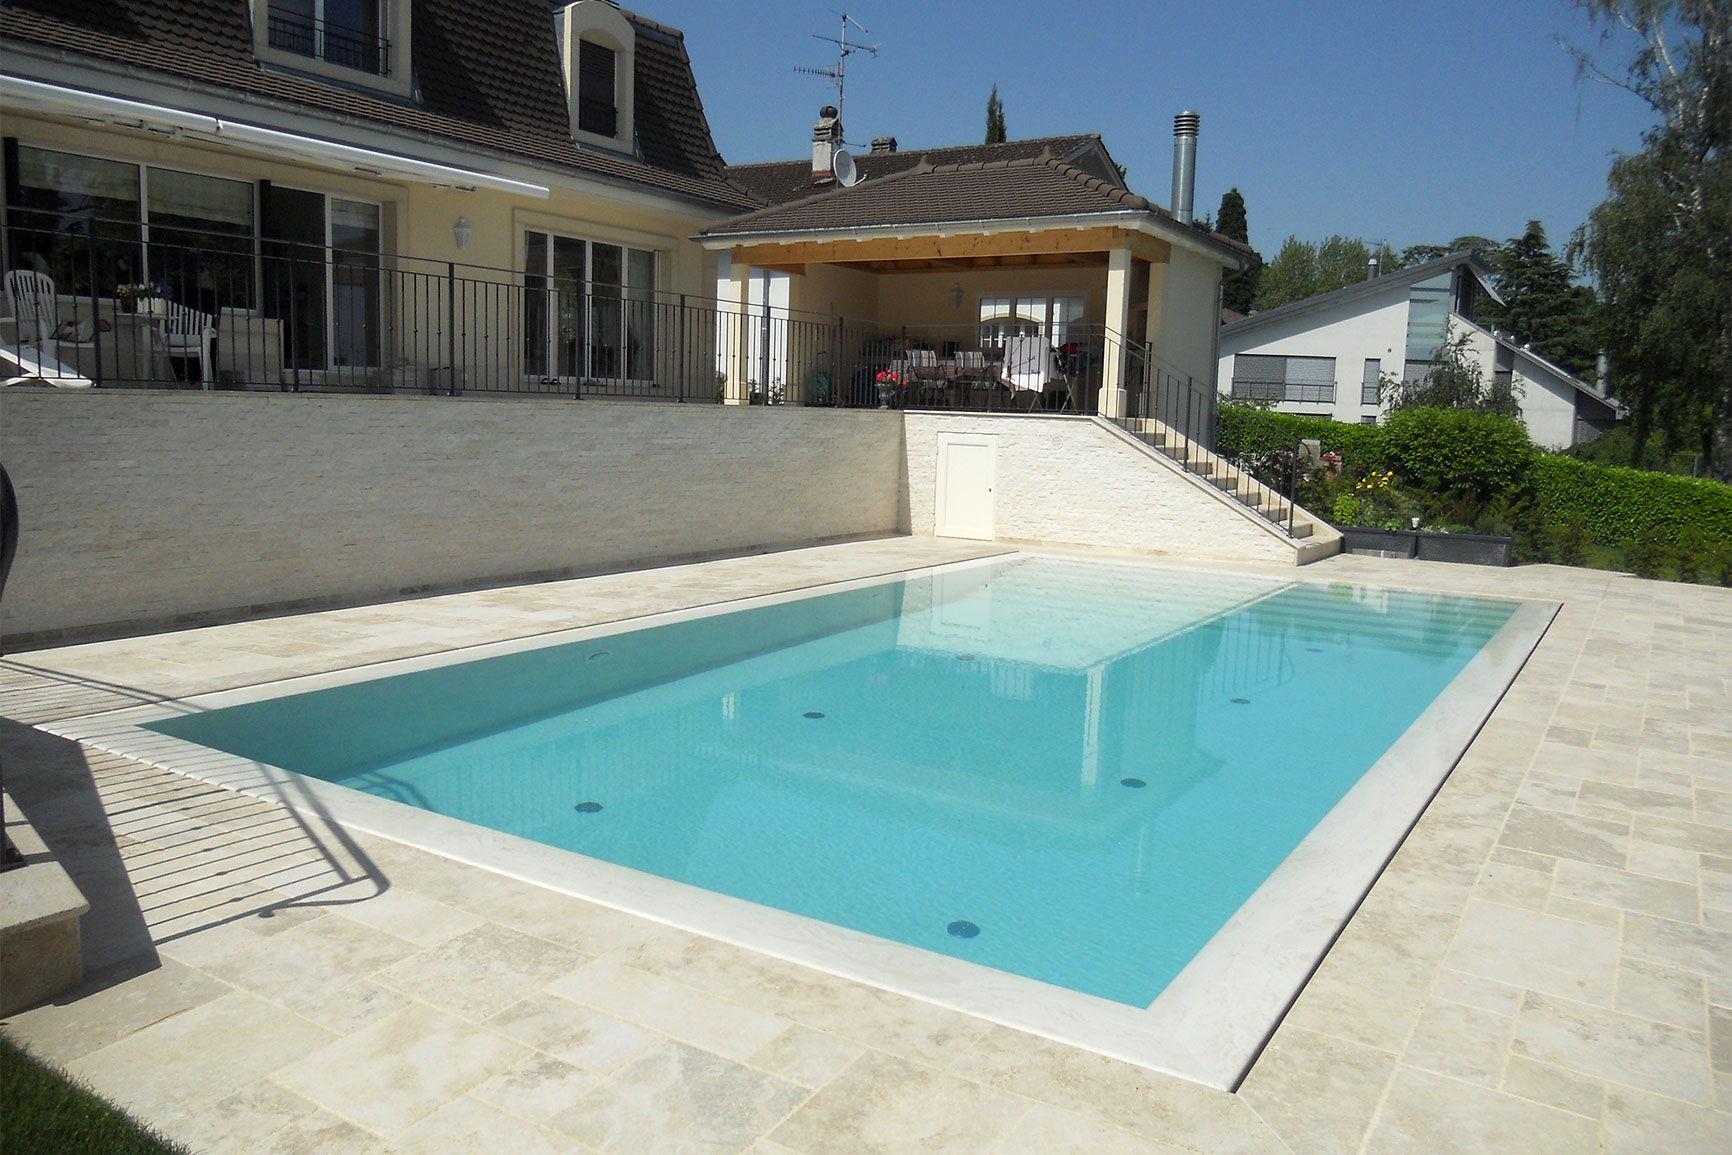 Piscine carrelage et d bordement couverture grando for Refoulement piscine miroir